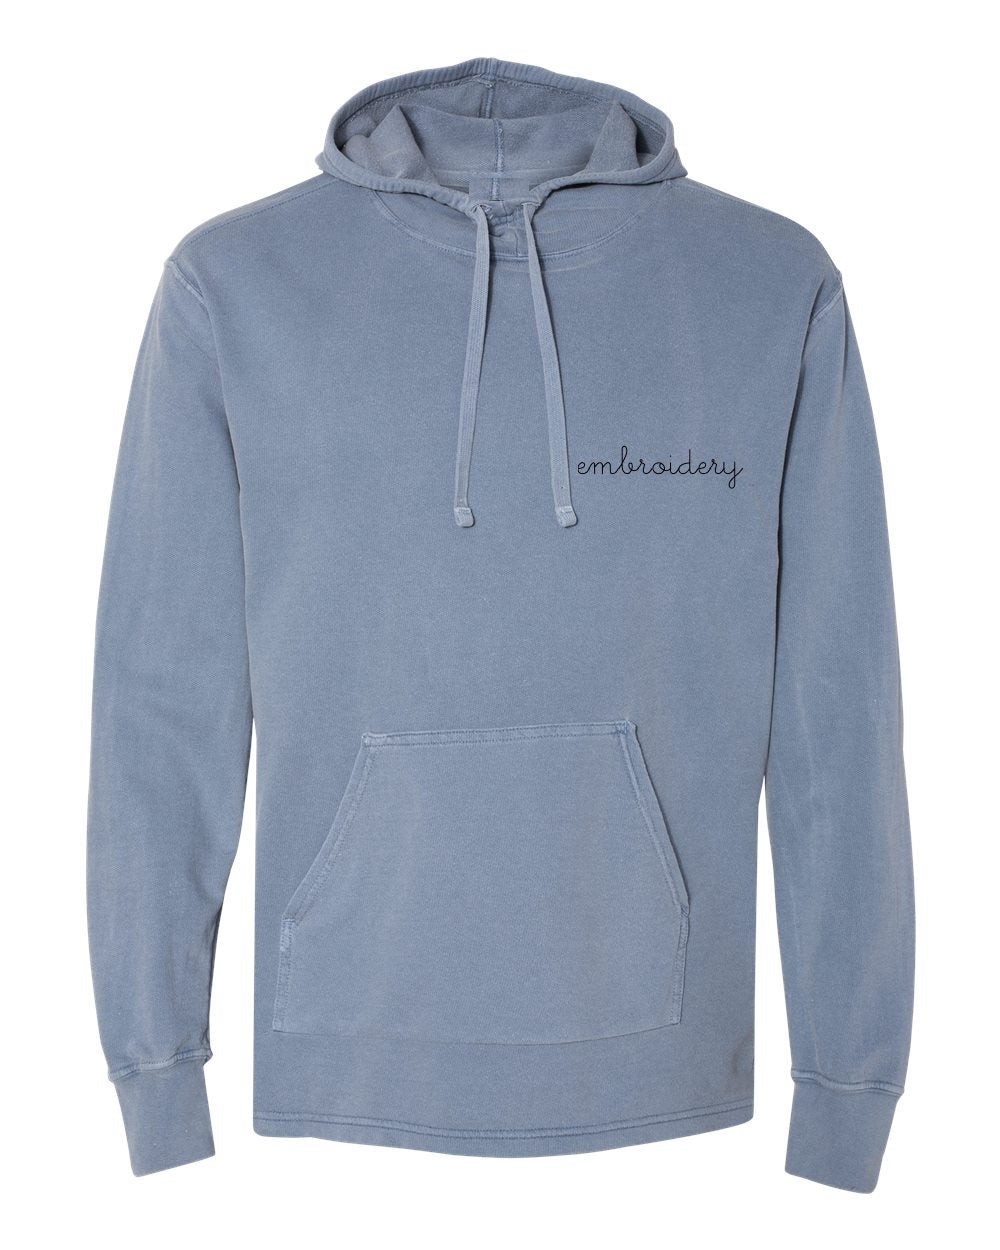 New! Adult Vintagewash French Terry Hoodie (Unisex)